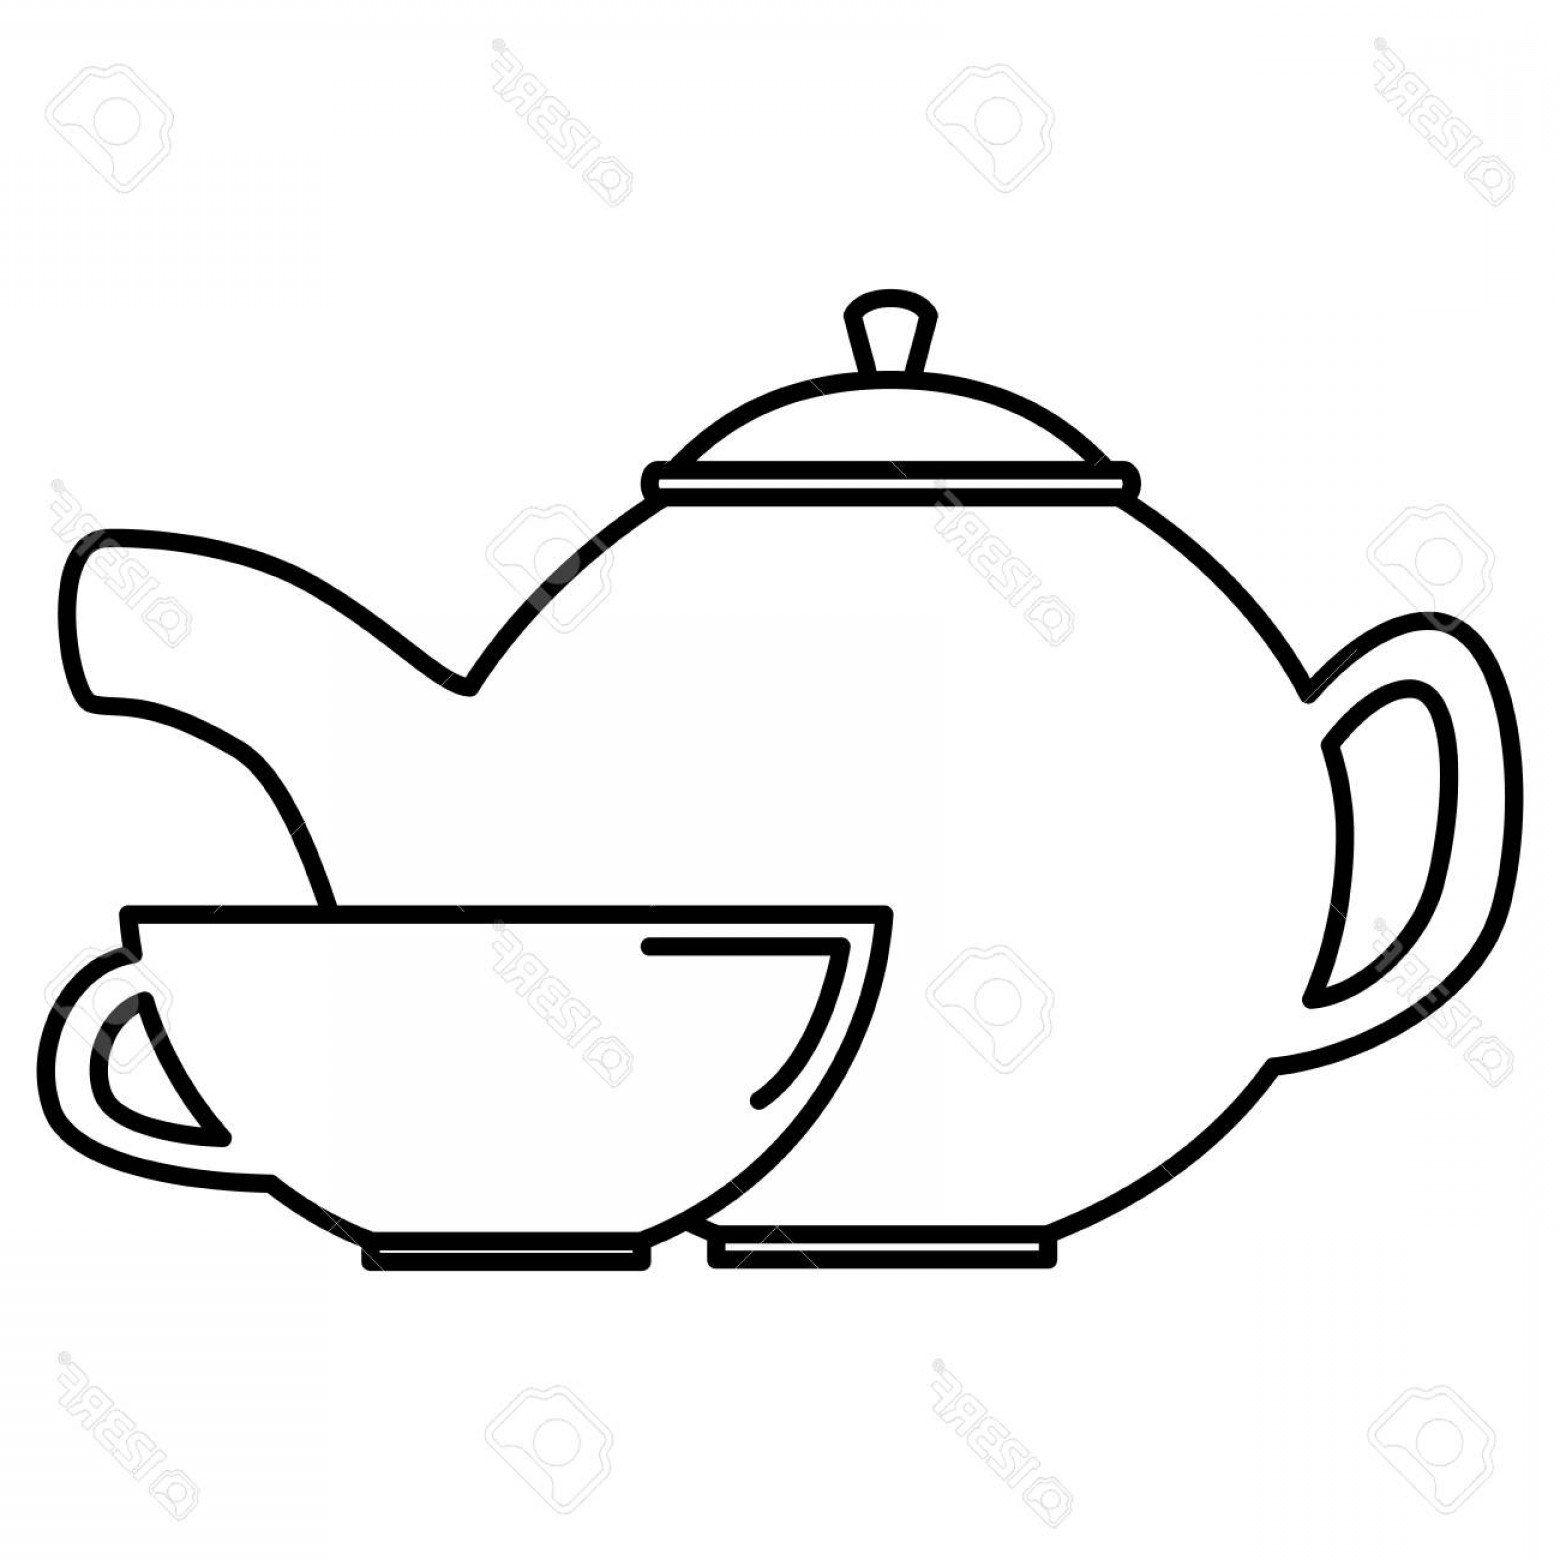 Teapot And Cup Vector: Photostock Vector Utensil Teapot With Cup Vector Illustration Design